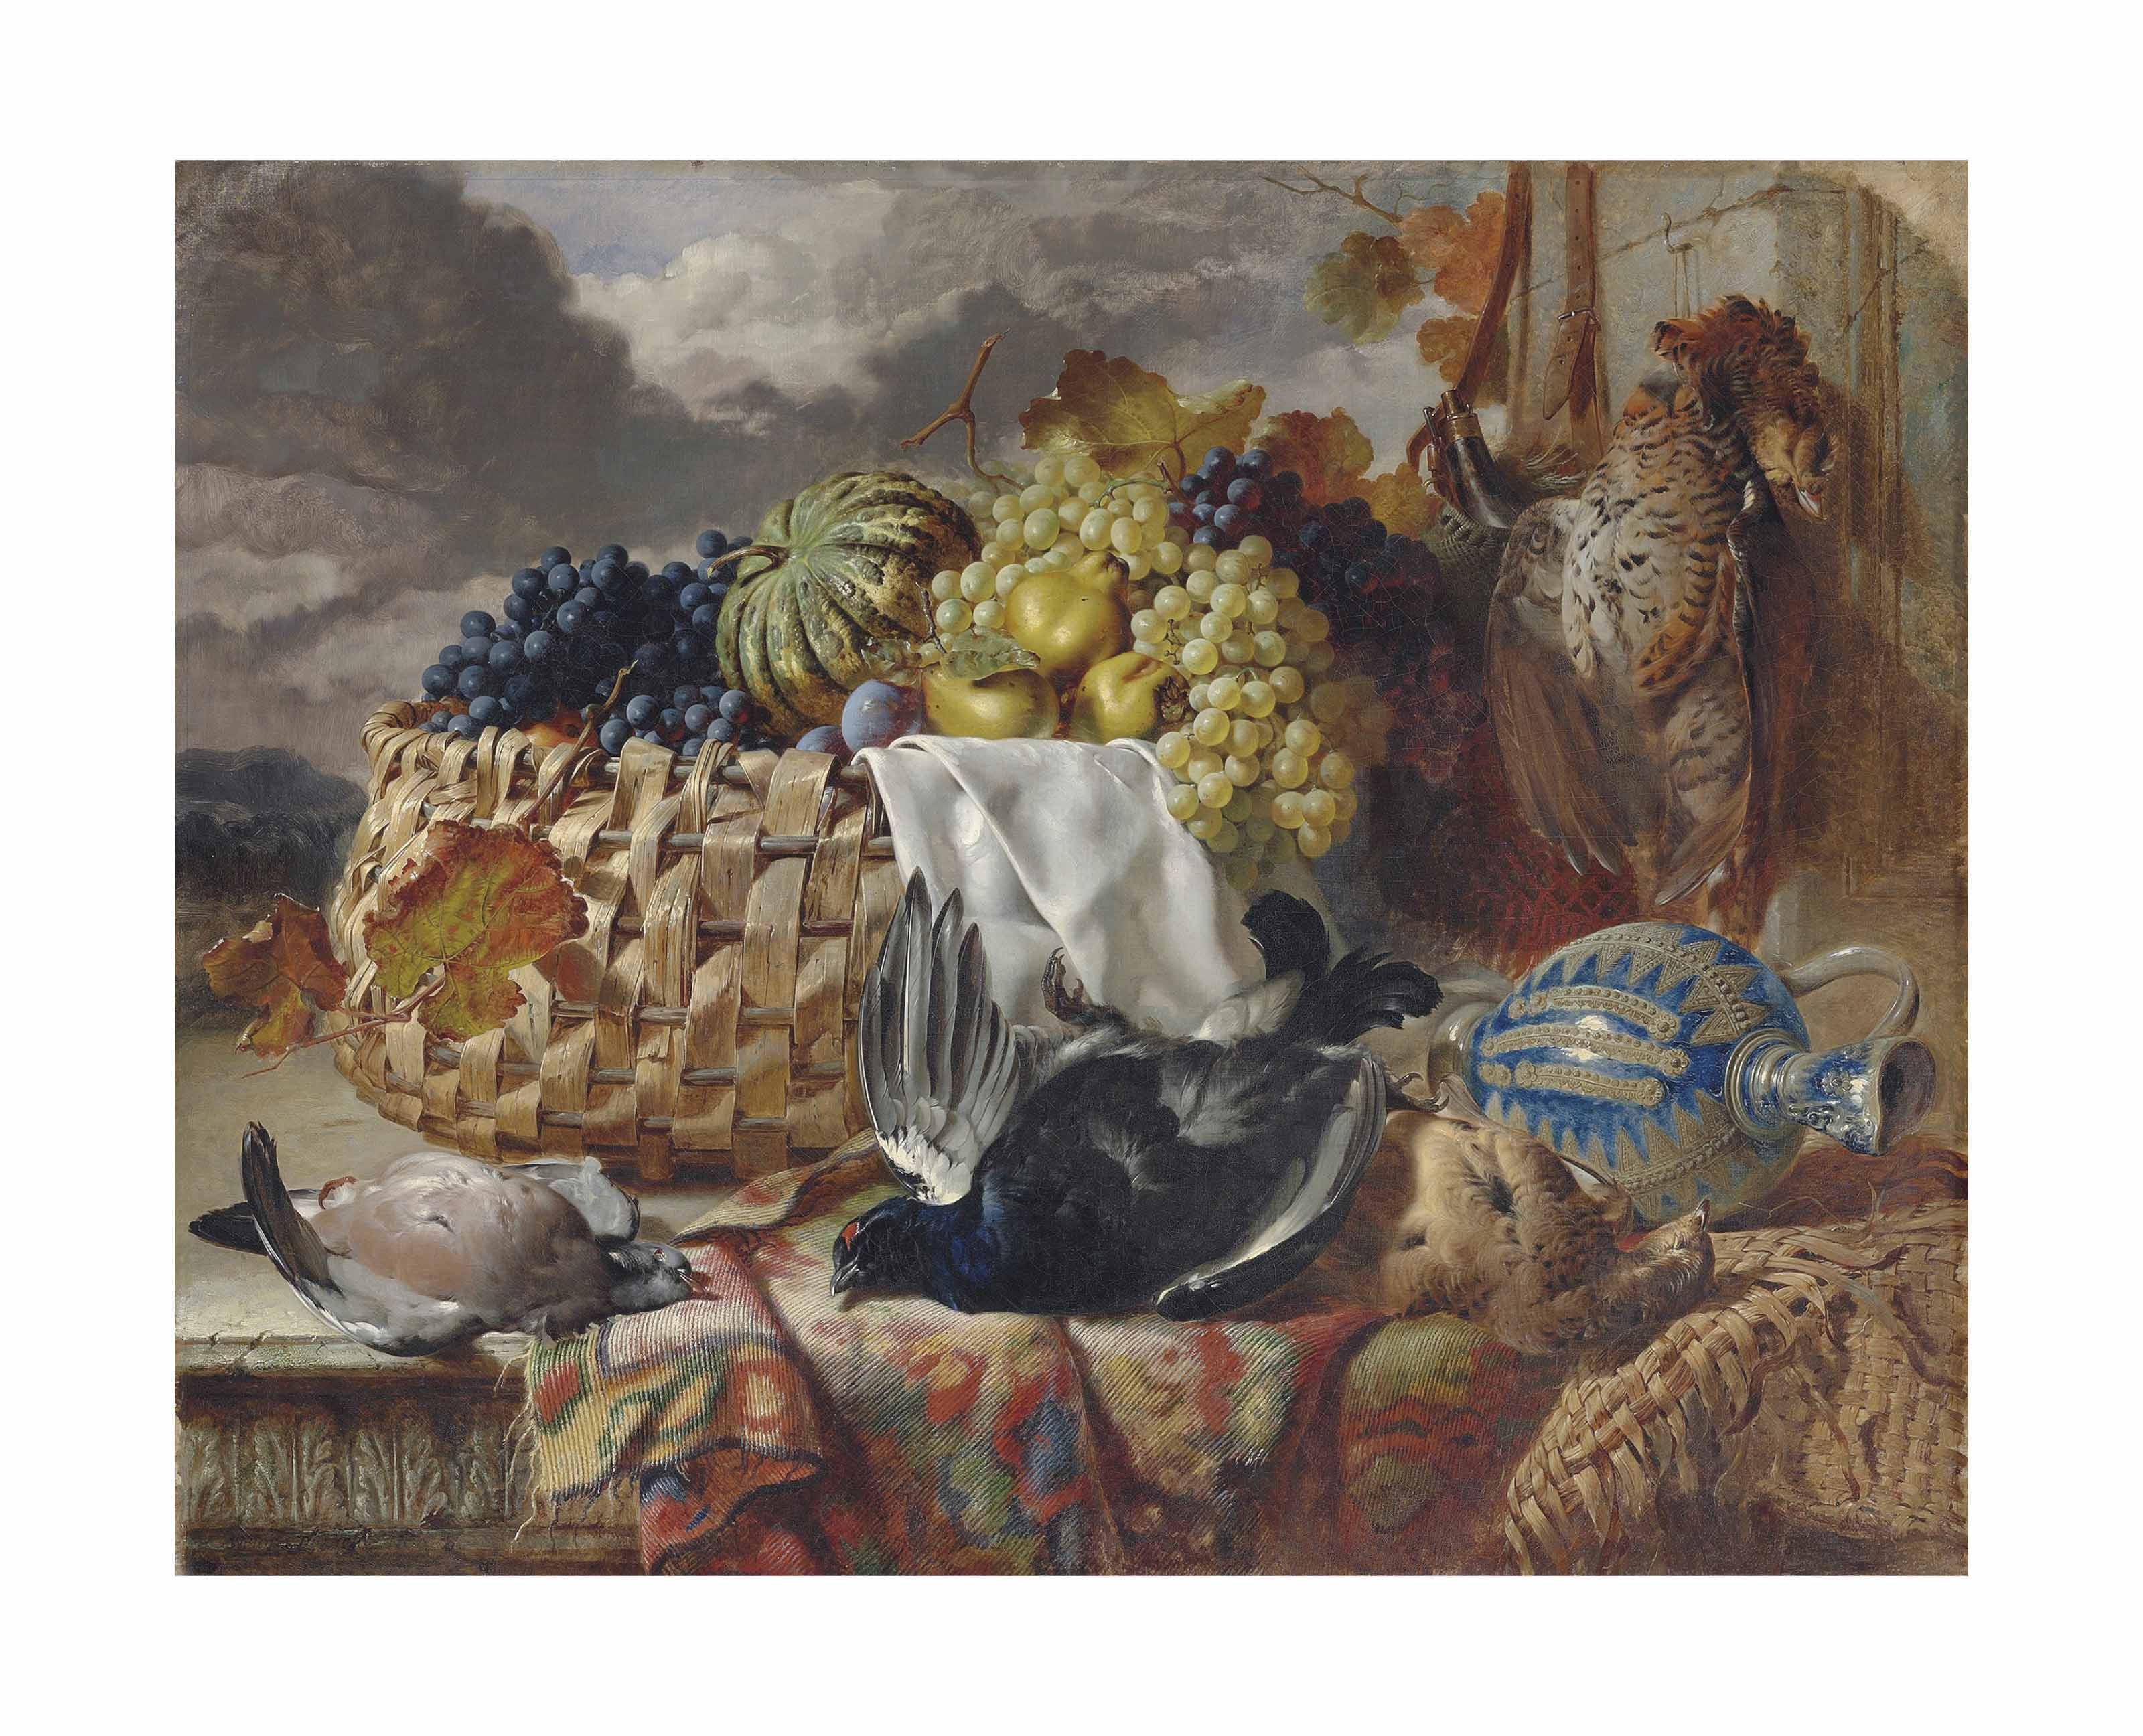 A black grouse, a greyhen, a wood pigeon and a pheasant beside grapes, pears and a melon in a wicker basket, on a partially draped ledge